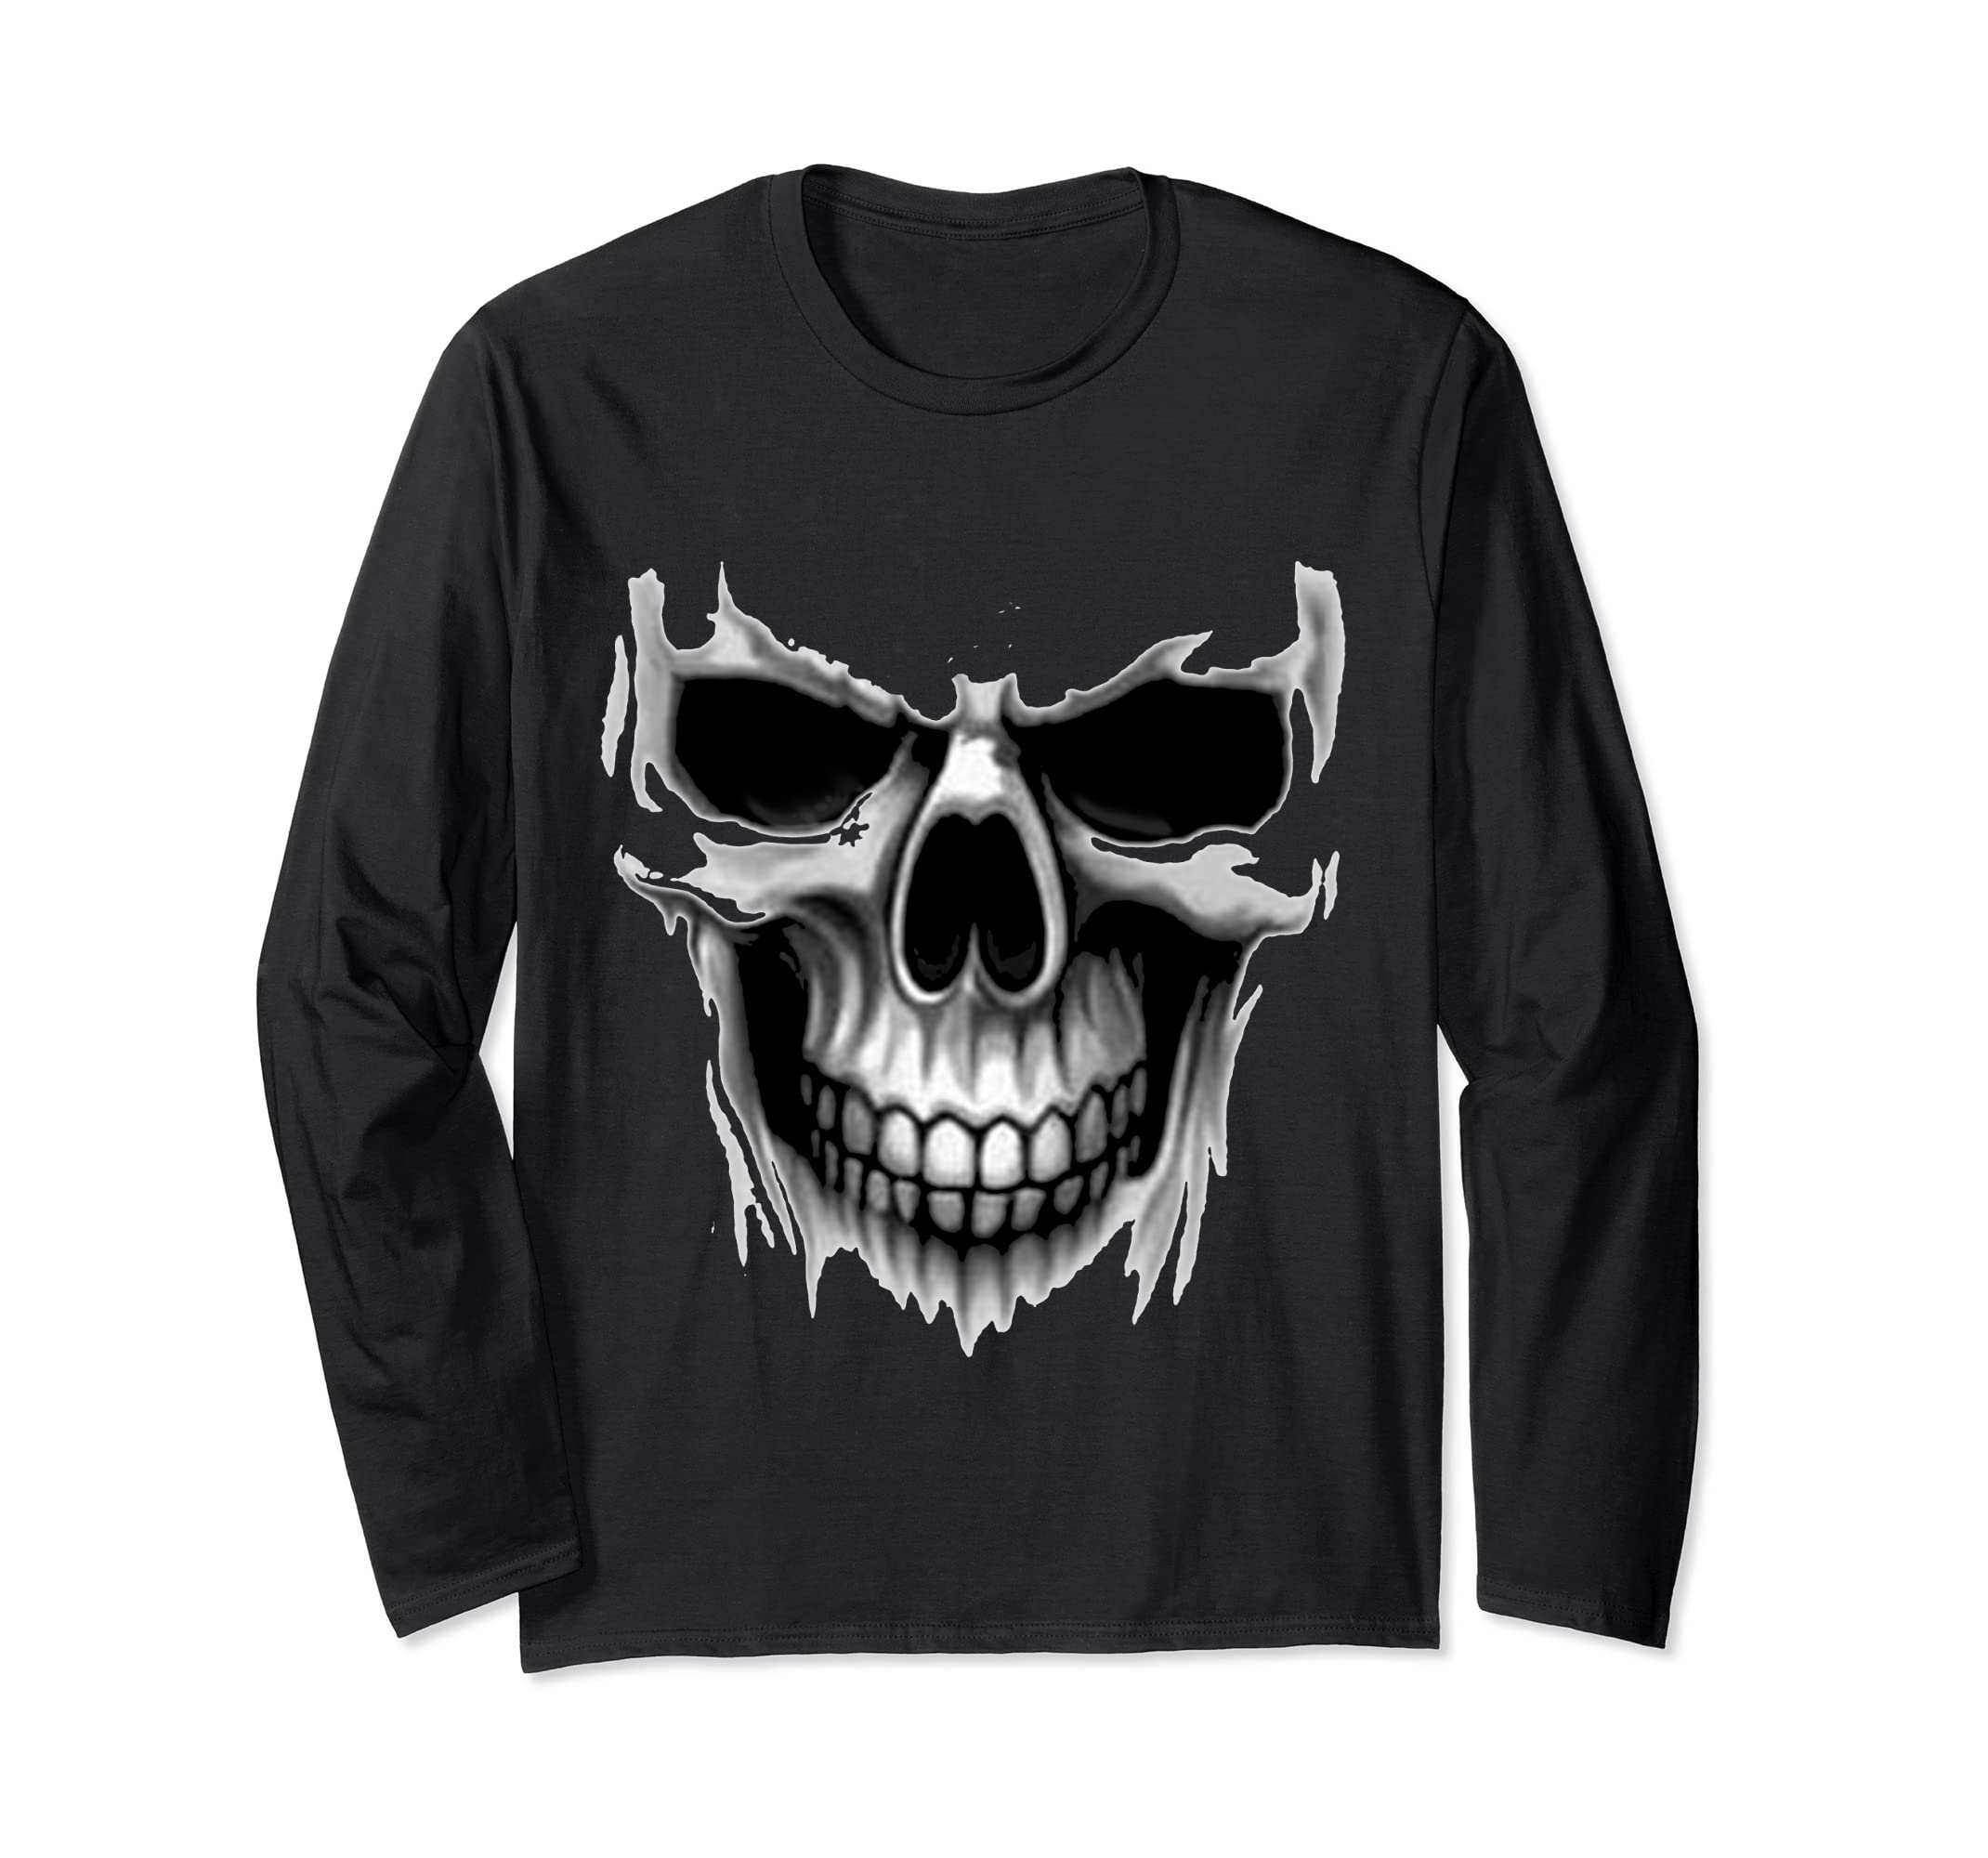 Amazon.com: CRANIUM DARK HORROR REAL SKULL BLACK DEAD MASK SLEEVE WINTER: Clothing